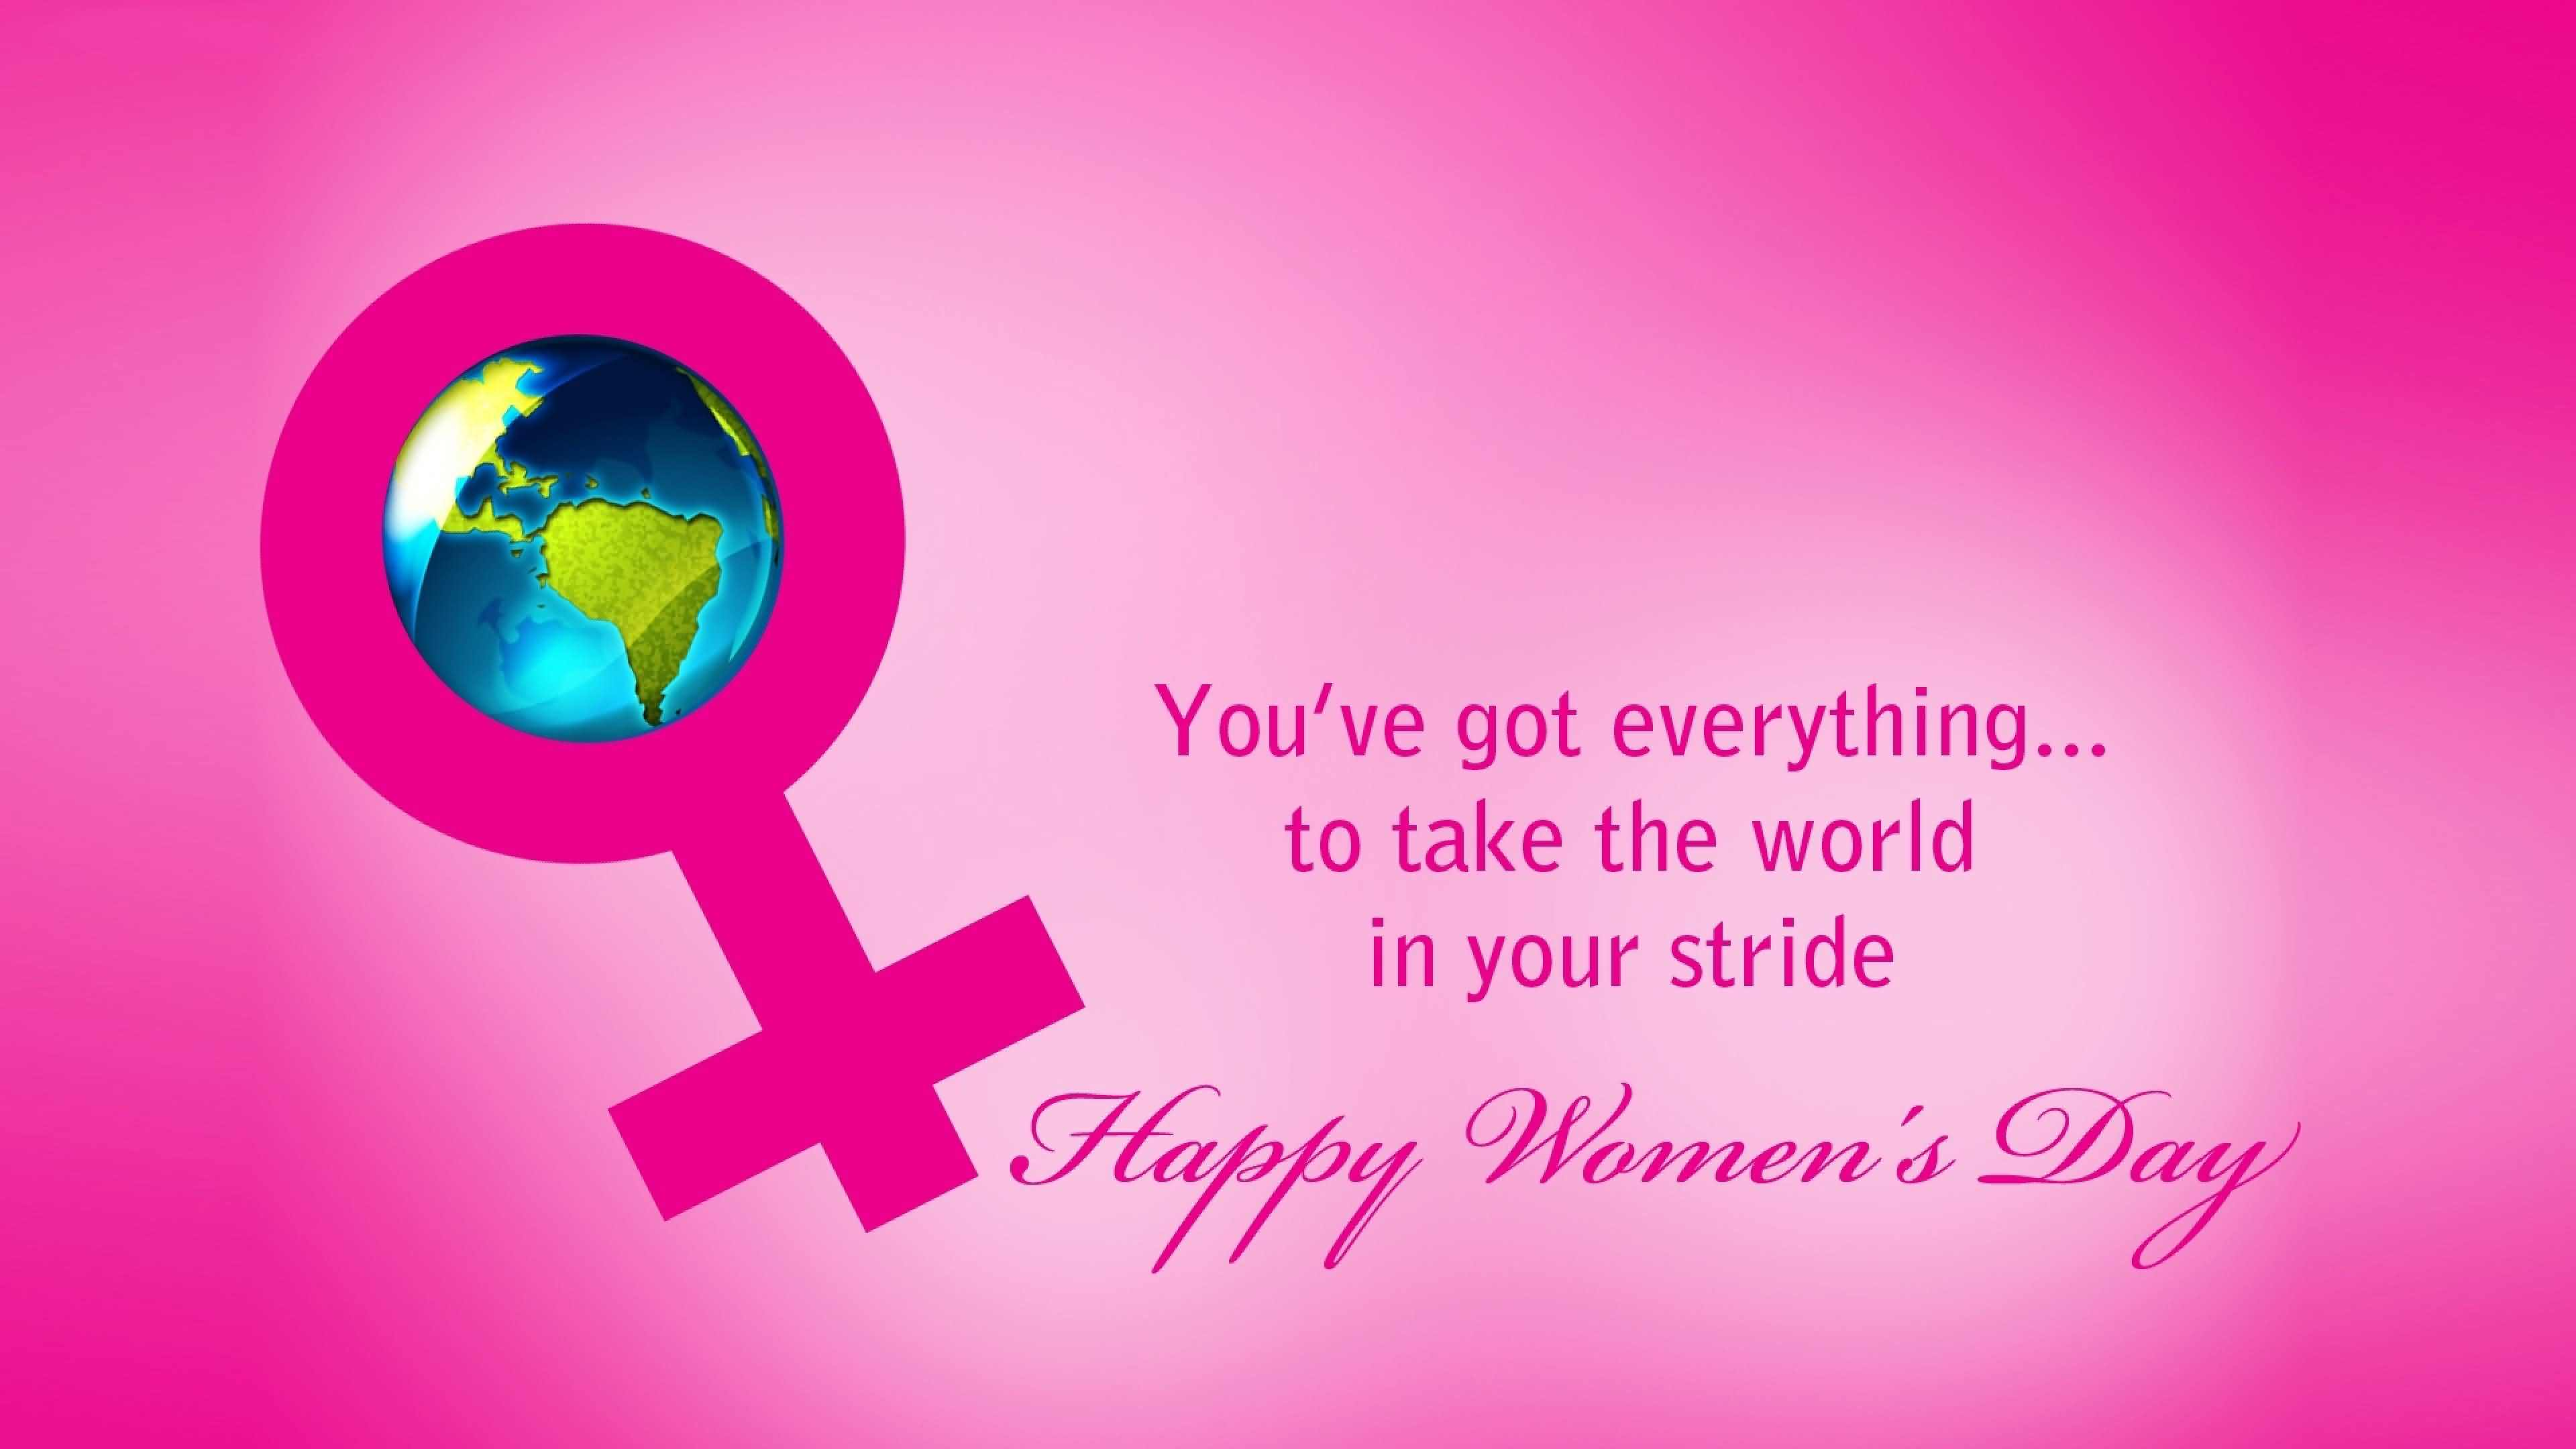 5-Happy Women's Day Wishes